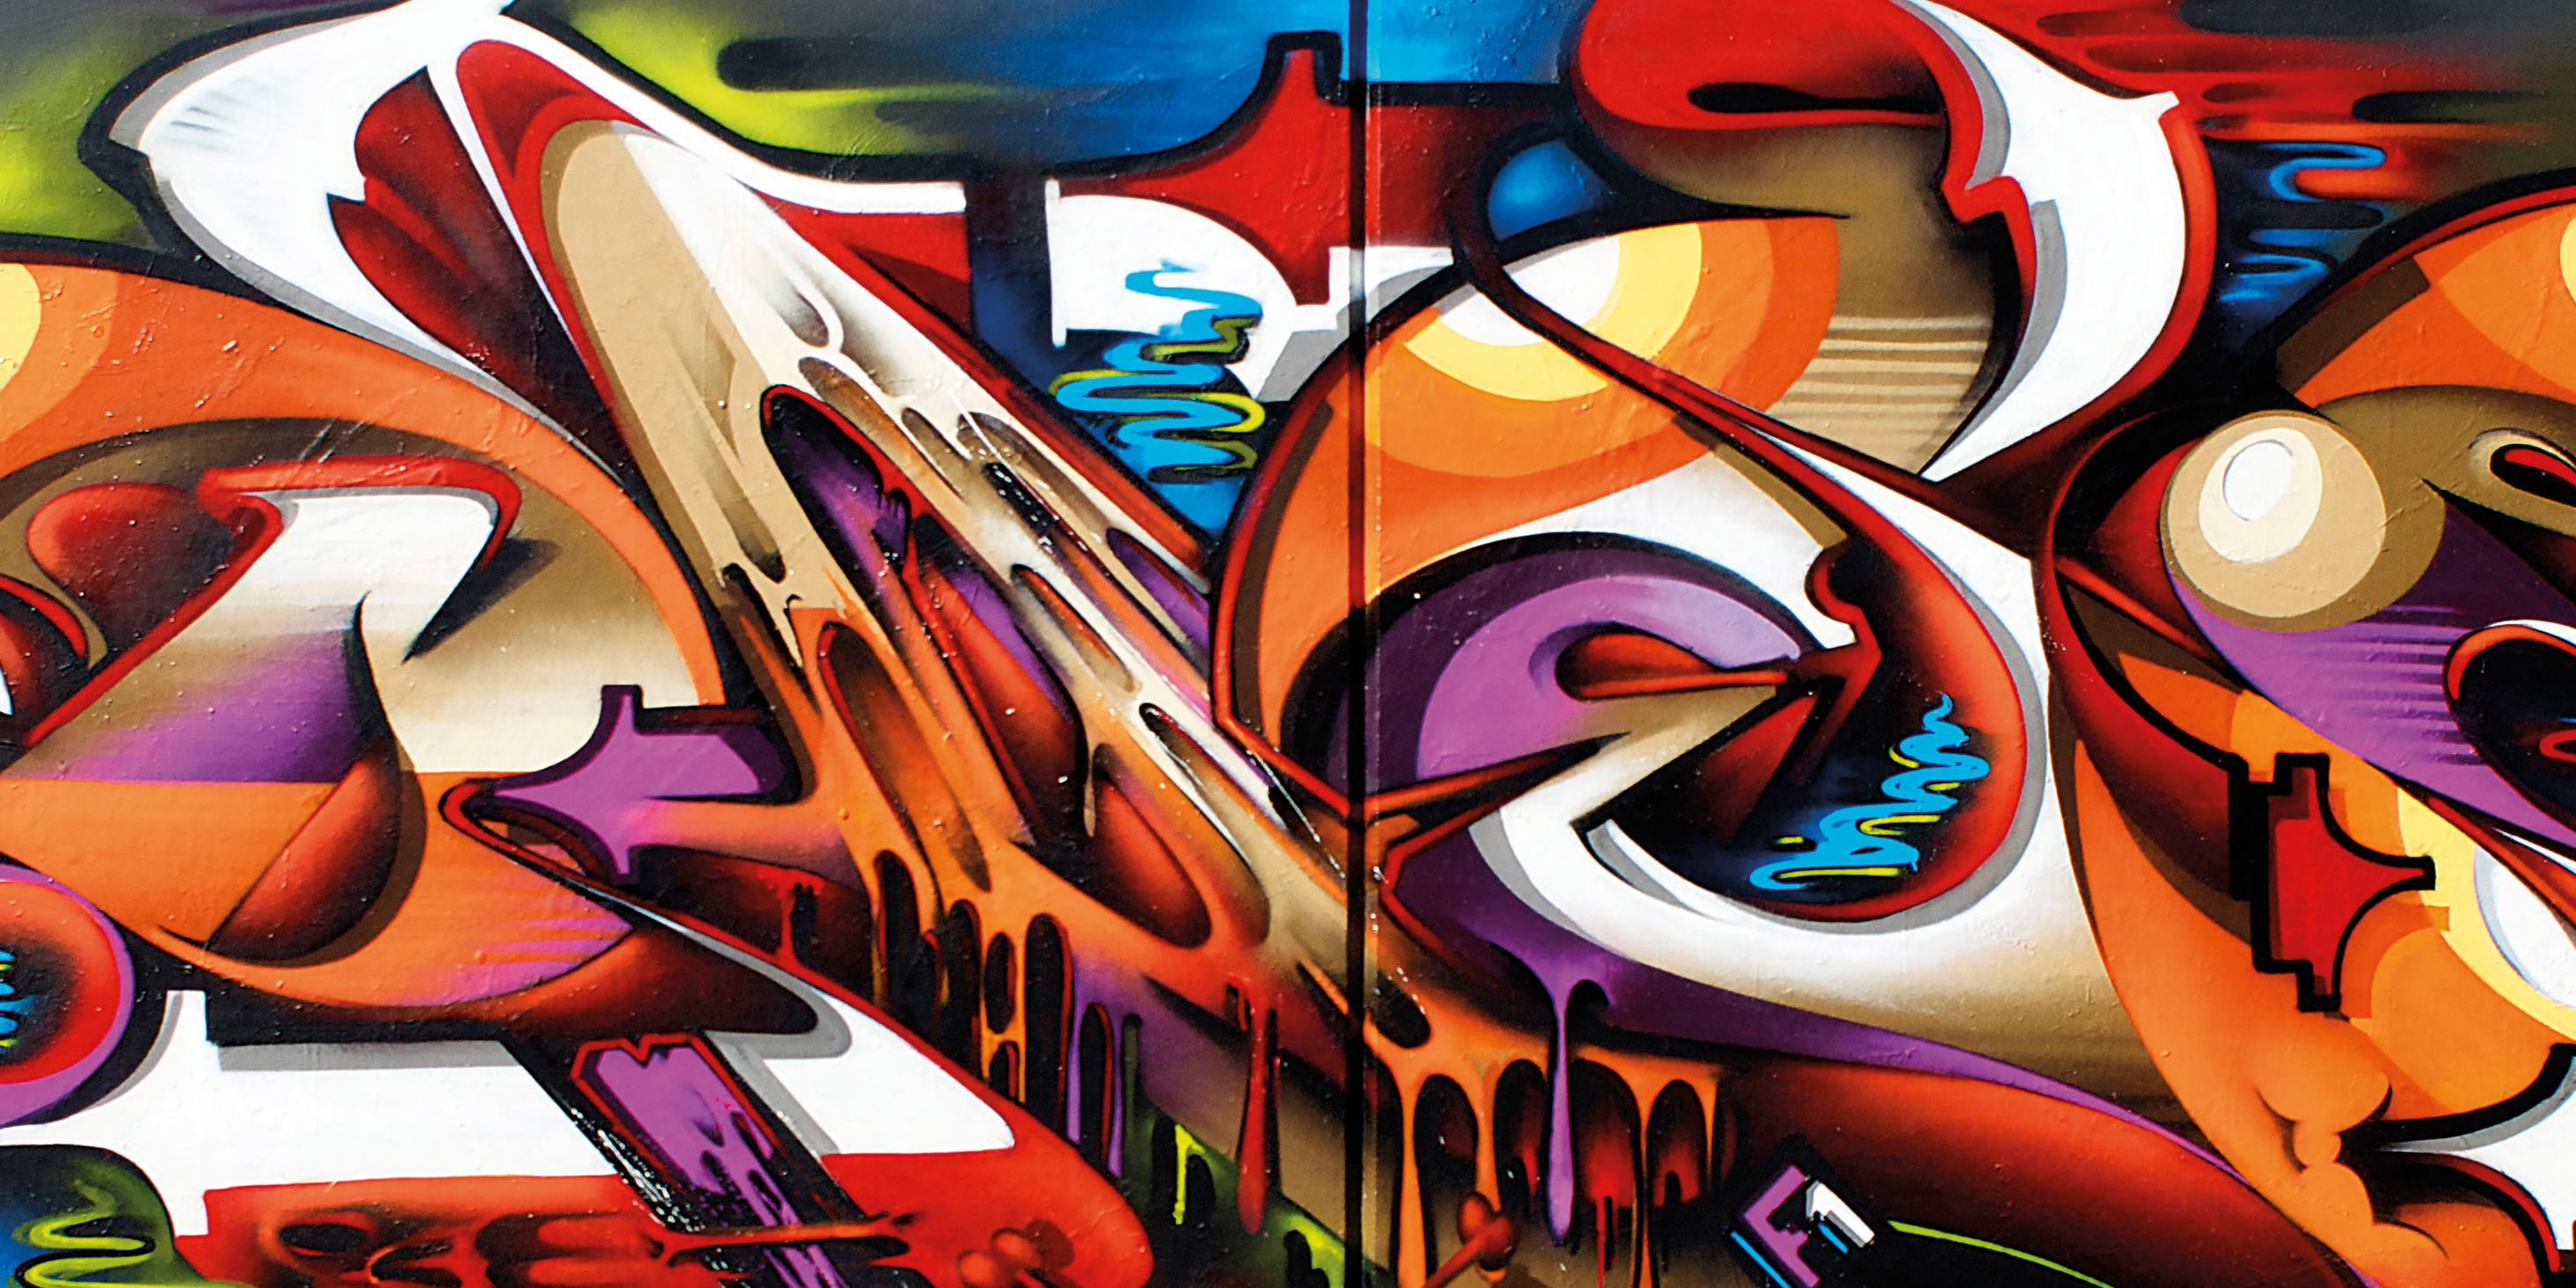 A work by Does - Melbourne australia detail mural